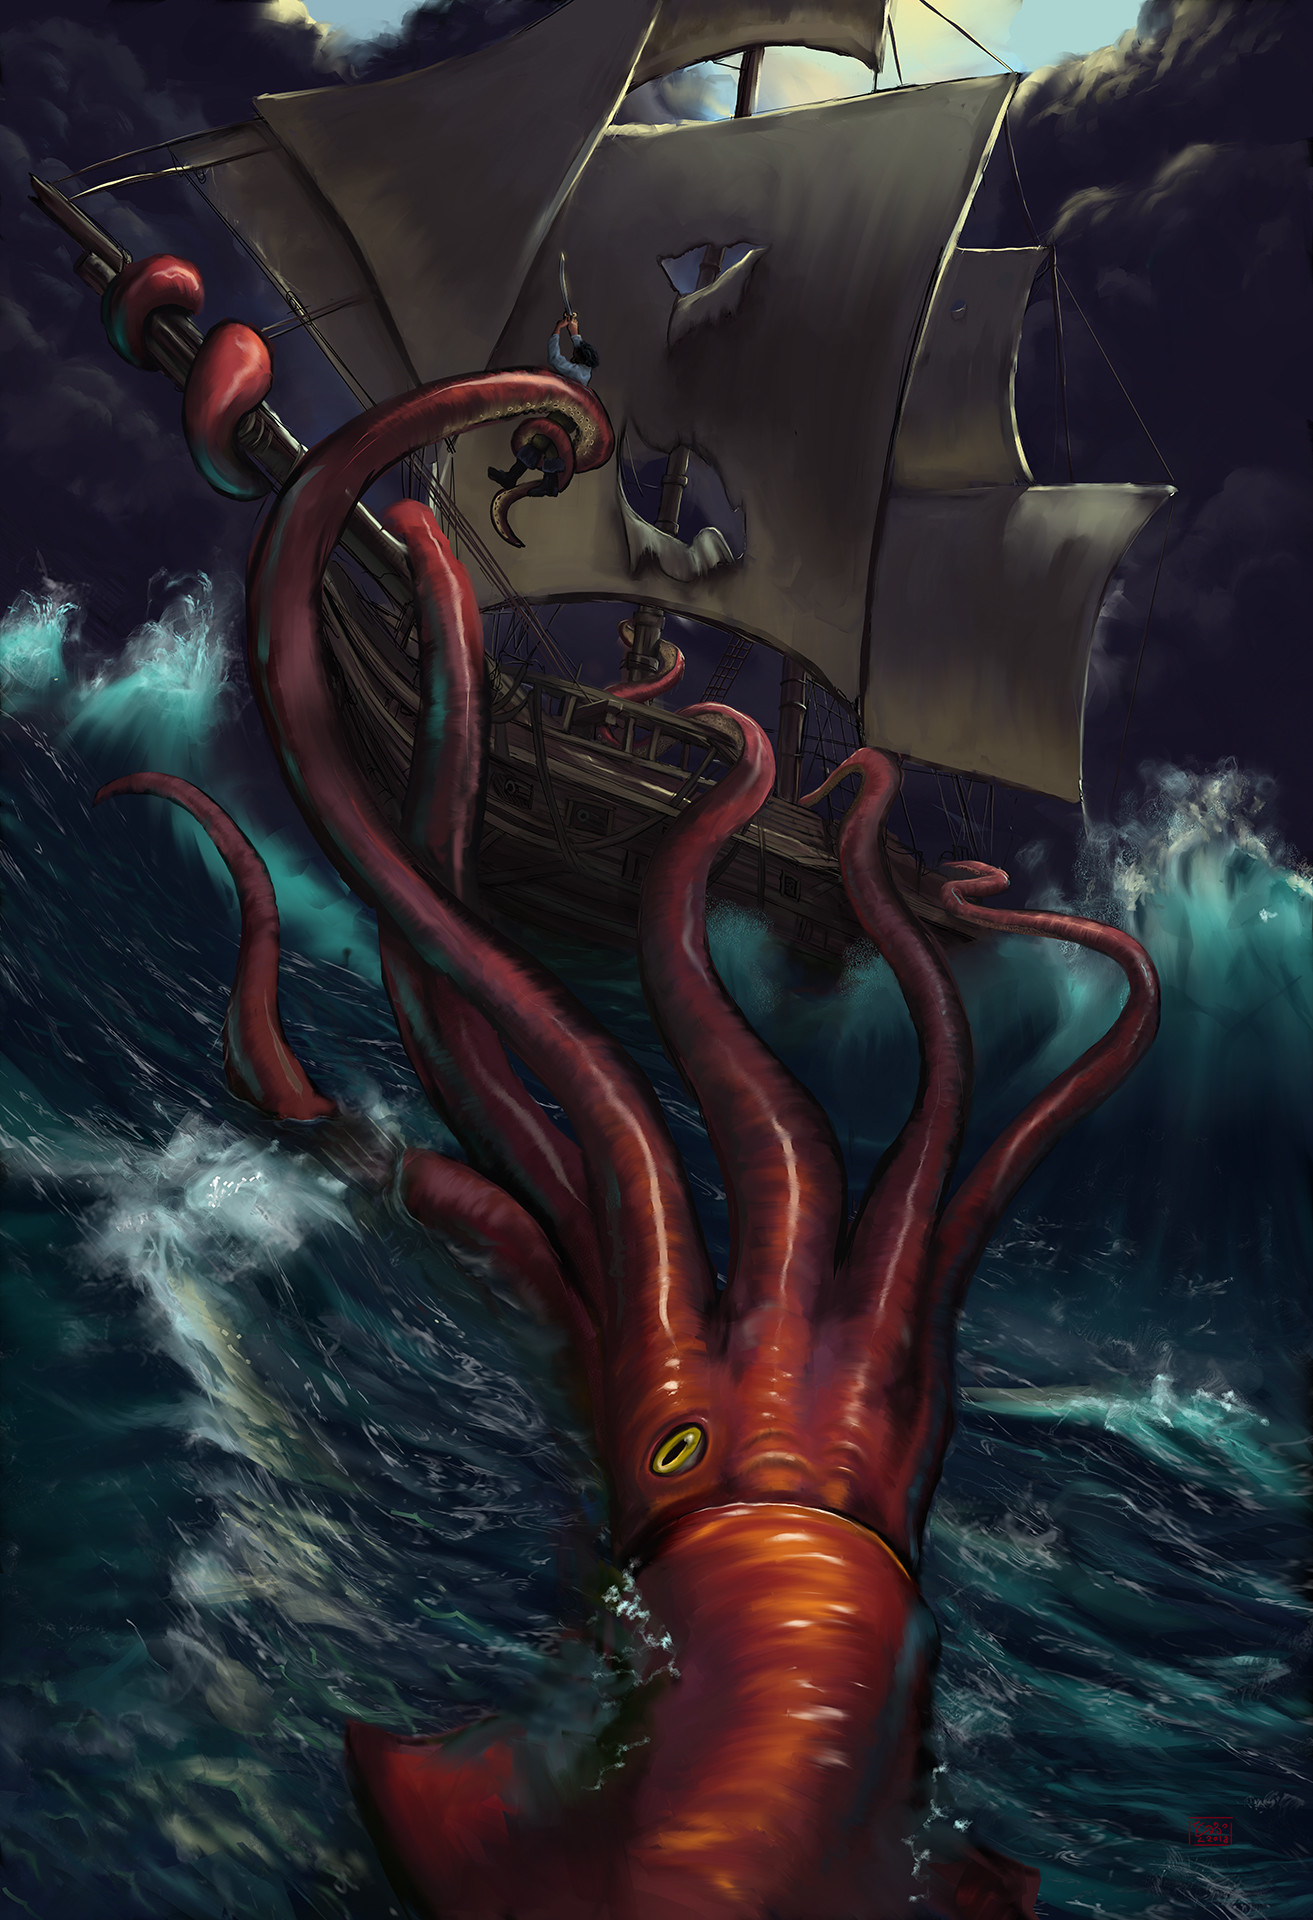 Casey weeks kraken ship web